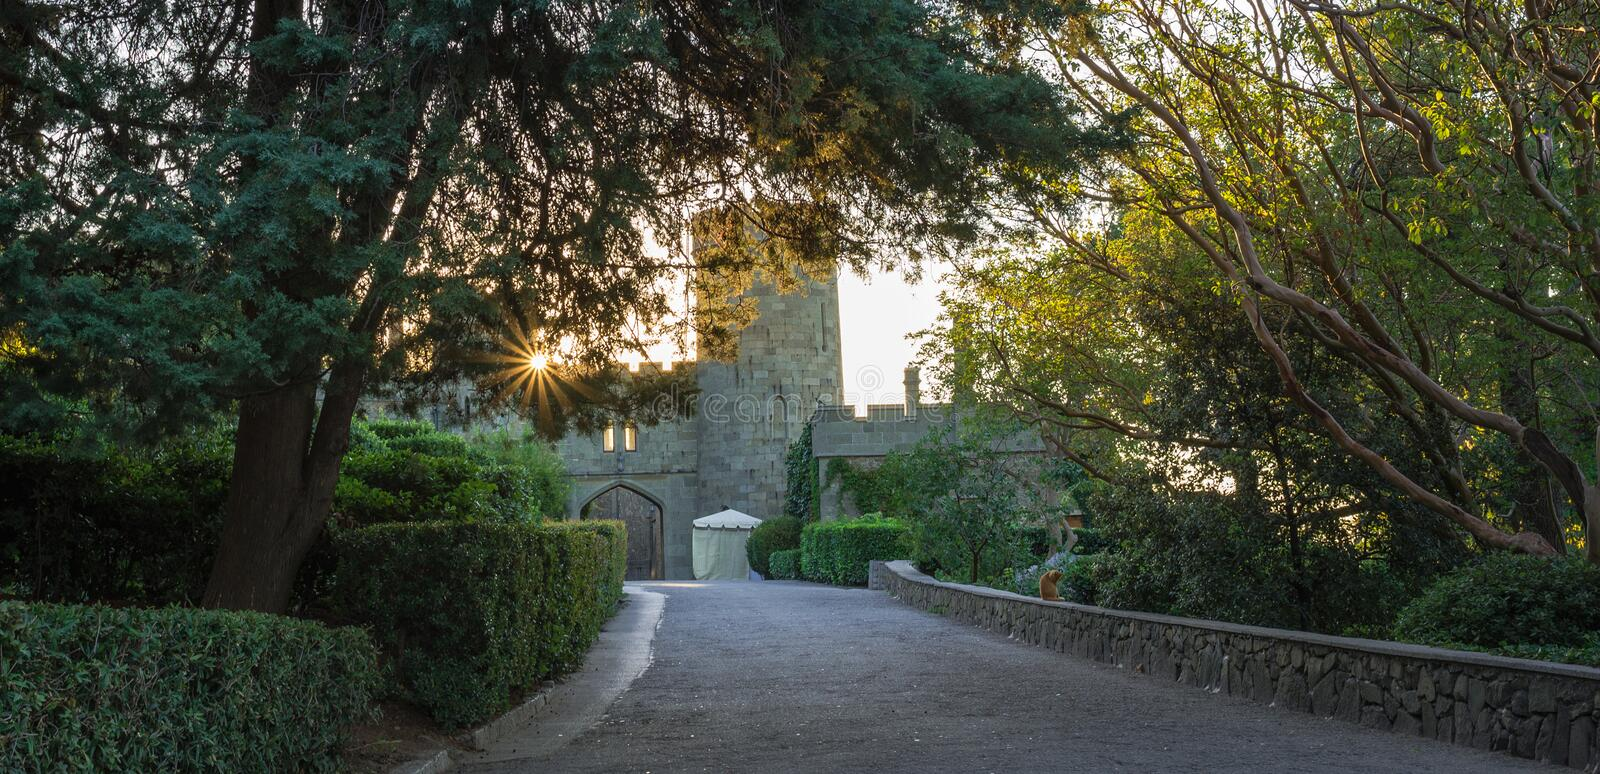 Vorontsov palace park, Alupka, Crimea. Turret and fortress wall with gate. Sundown, sun shines through the green foliage, cropped bushes. Scottish Baronial royalty free stock image